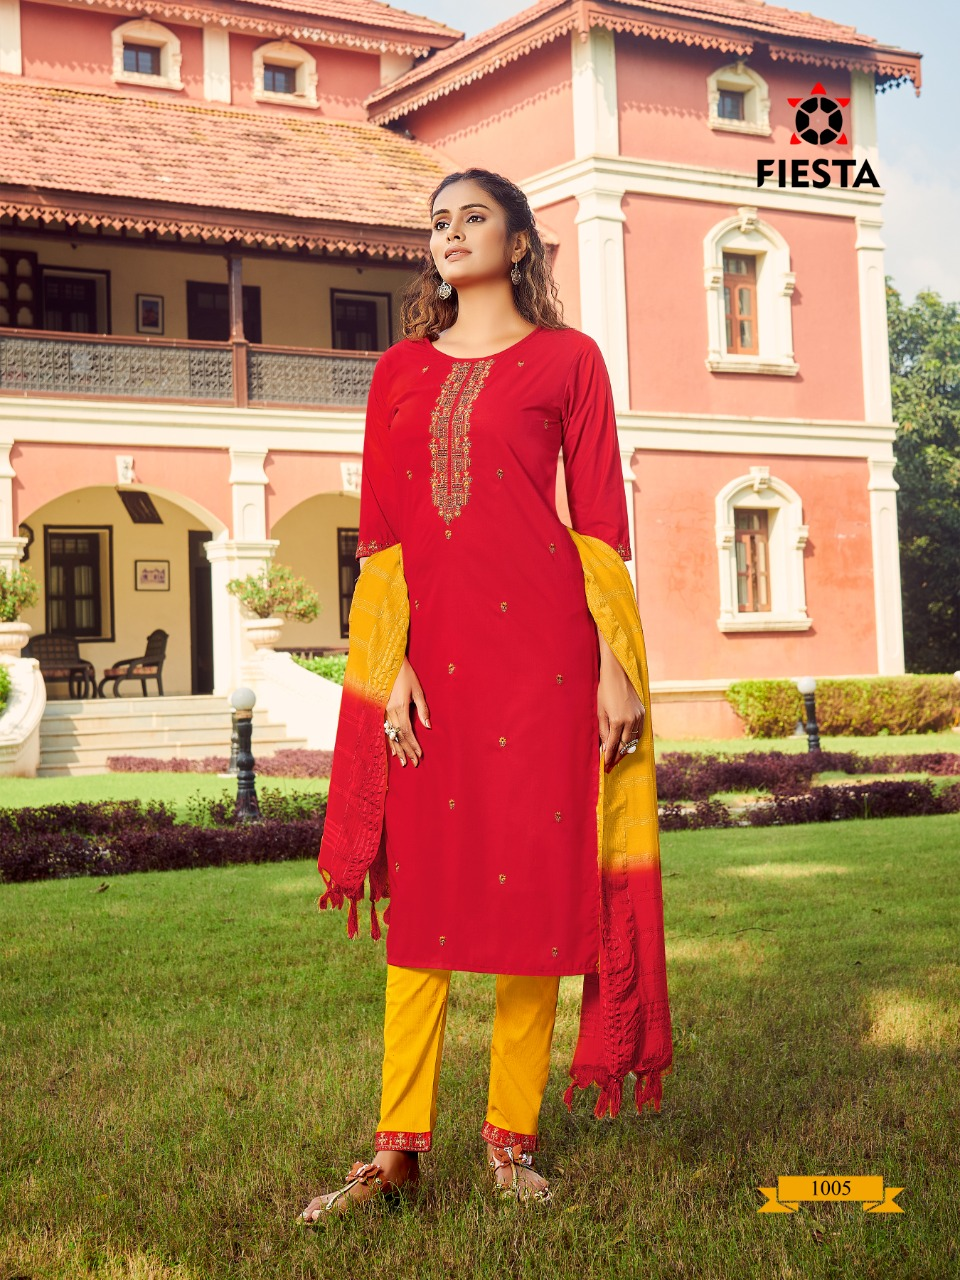 Fiesta Gulbaag Readymade Pant Style Suits Catalog Lowest Price